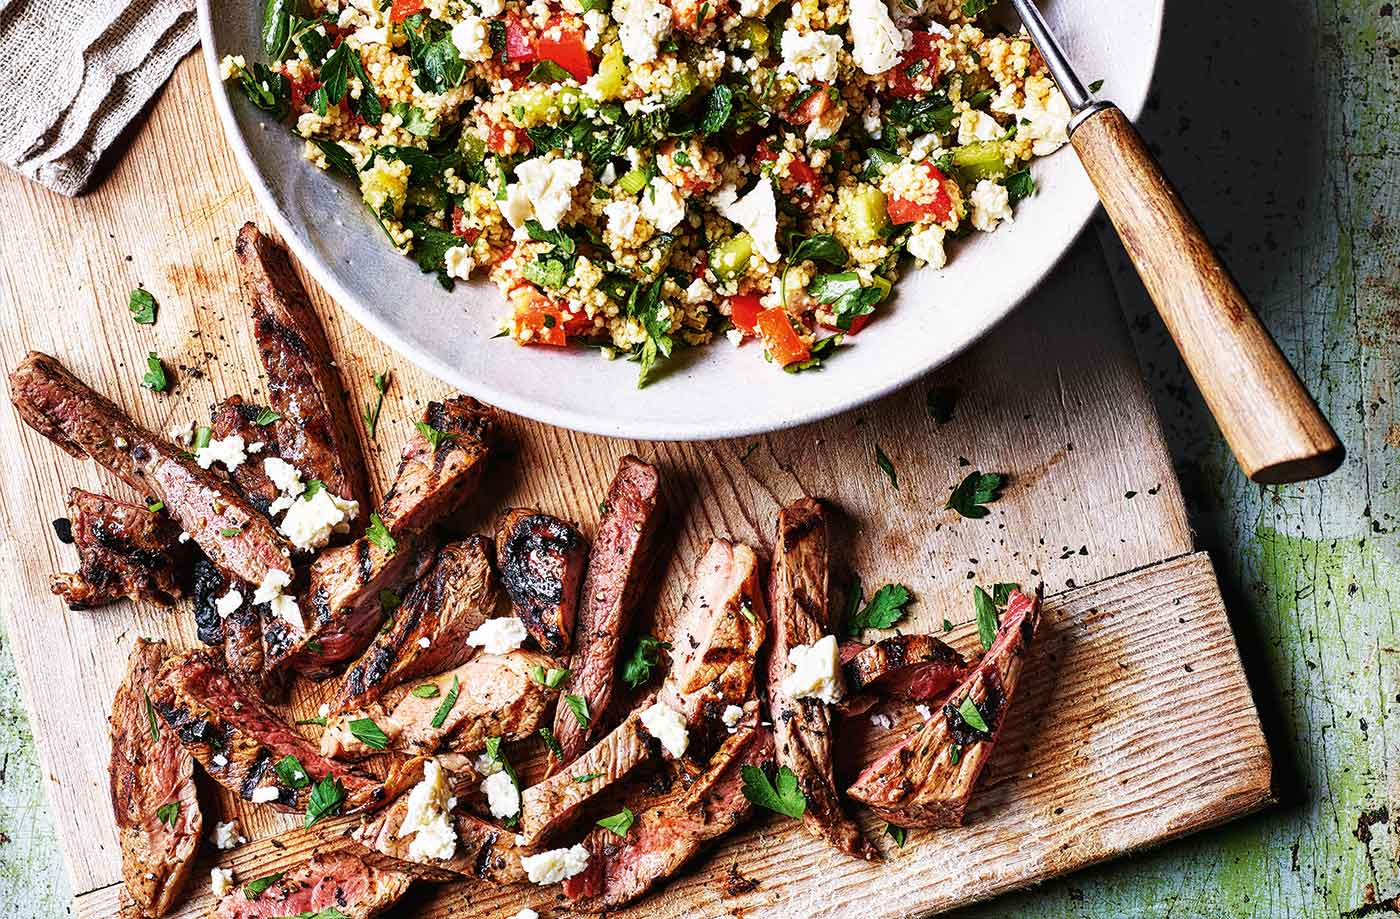 Minted lamb with couscous salad recipe